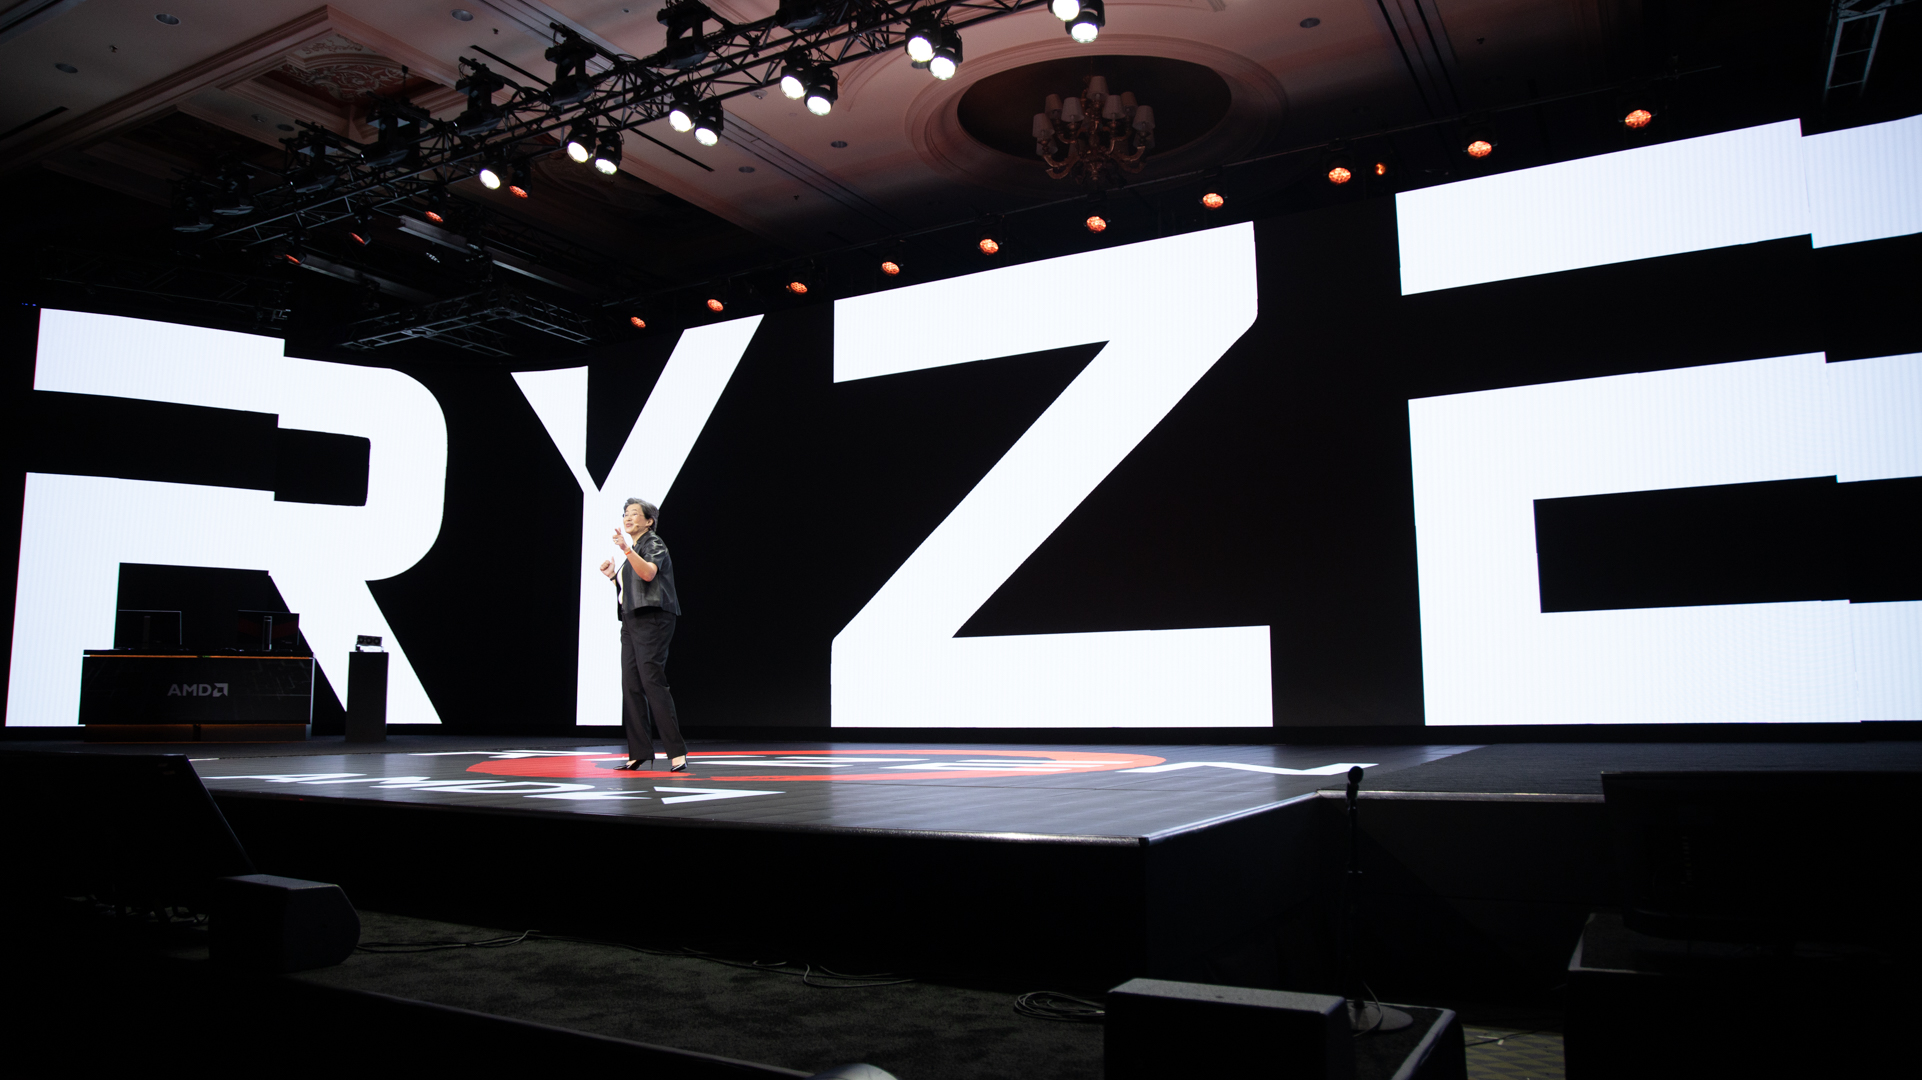 Ryzen 3000 CPUs don't hit top speeds on all cores - is AMD's